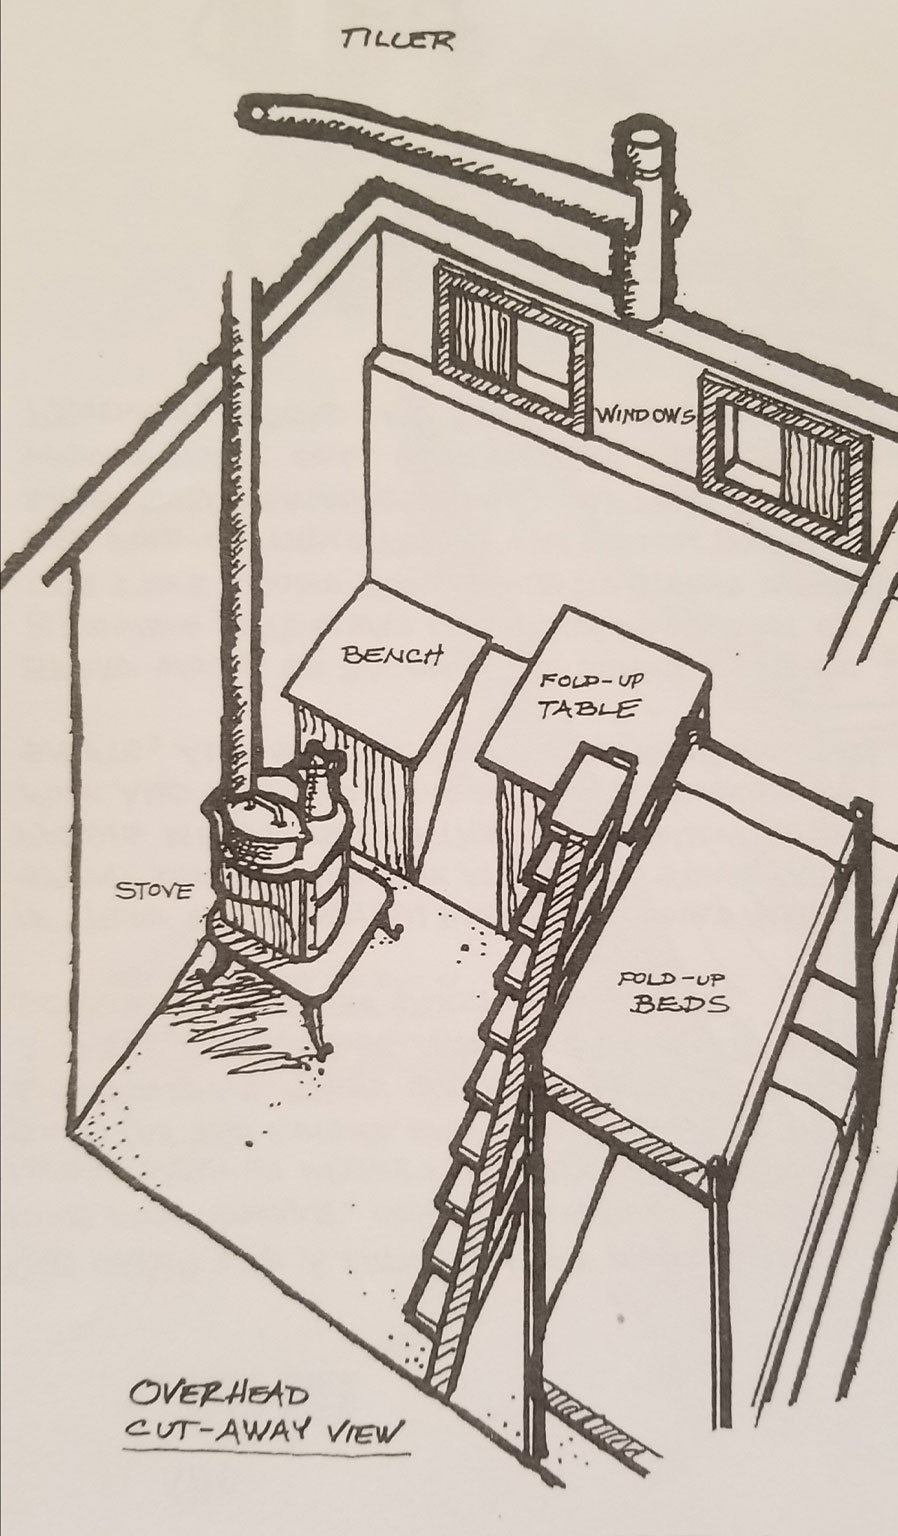 As you can see in this drawing the cabins were small and well organized.  It contained only what was needed; a stove, beds, a table and storage.